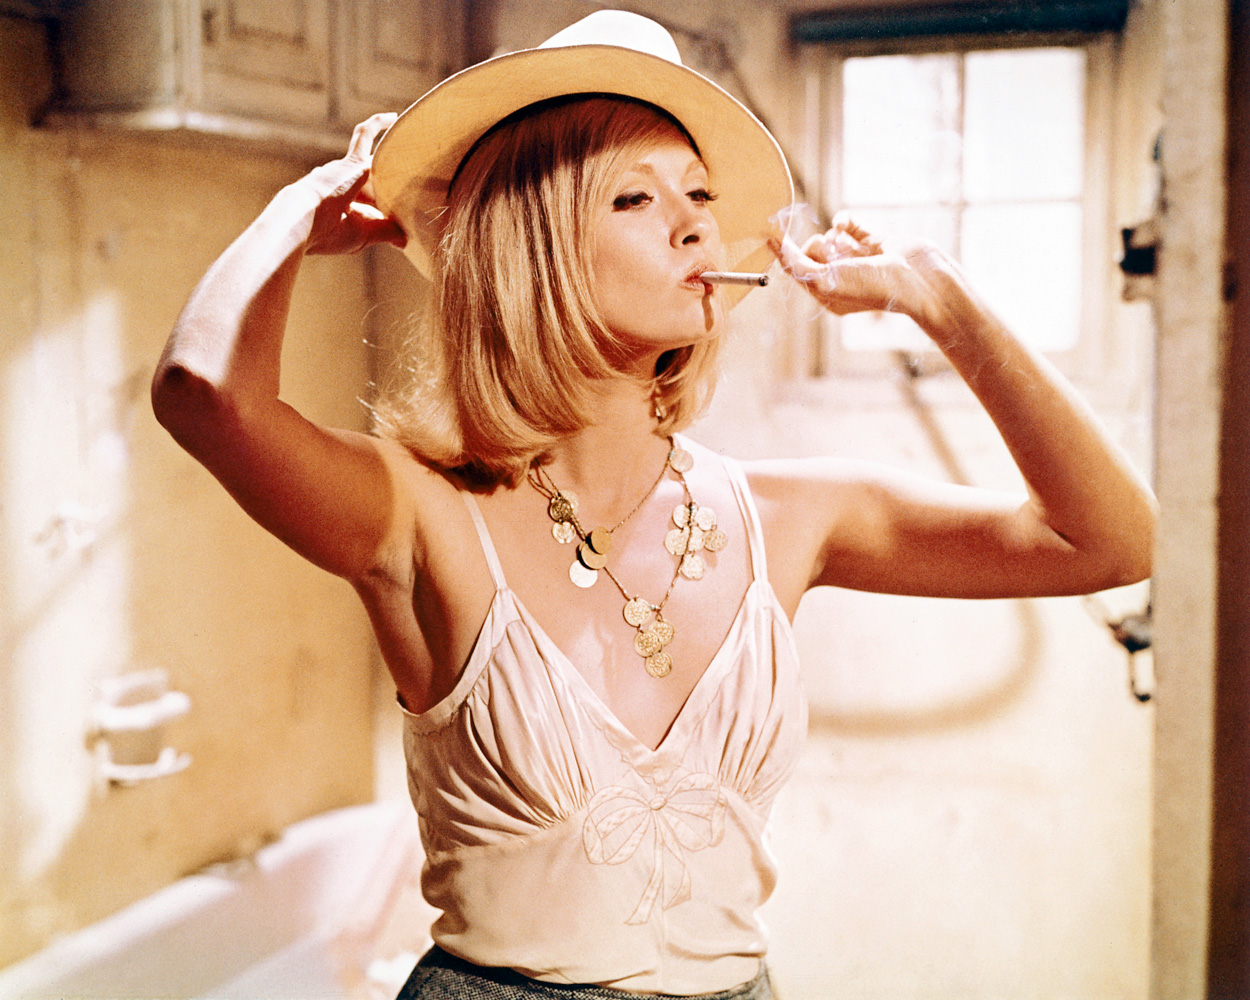 Faye Danaway, Bonnie and Clyde (1967)